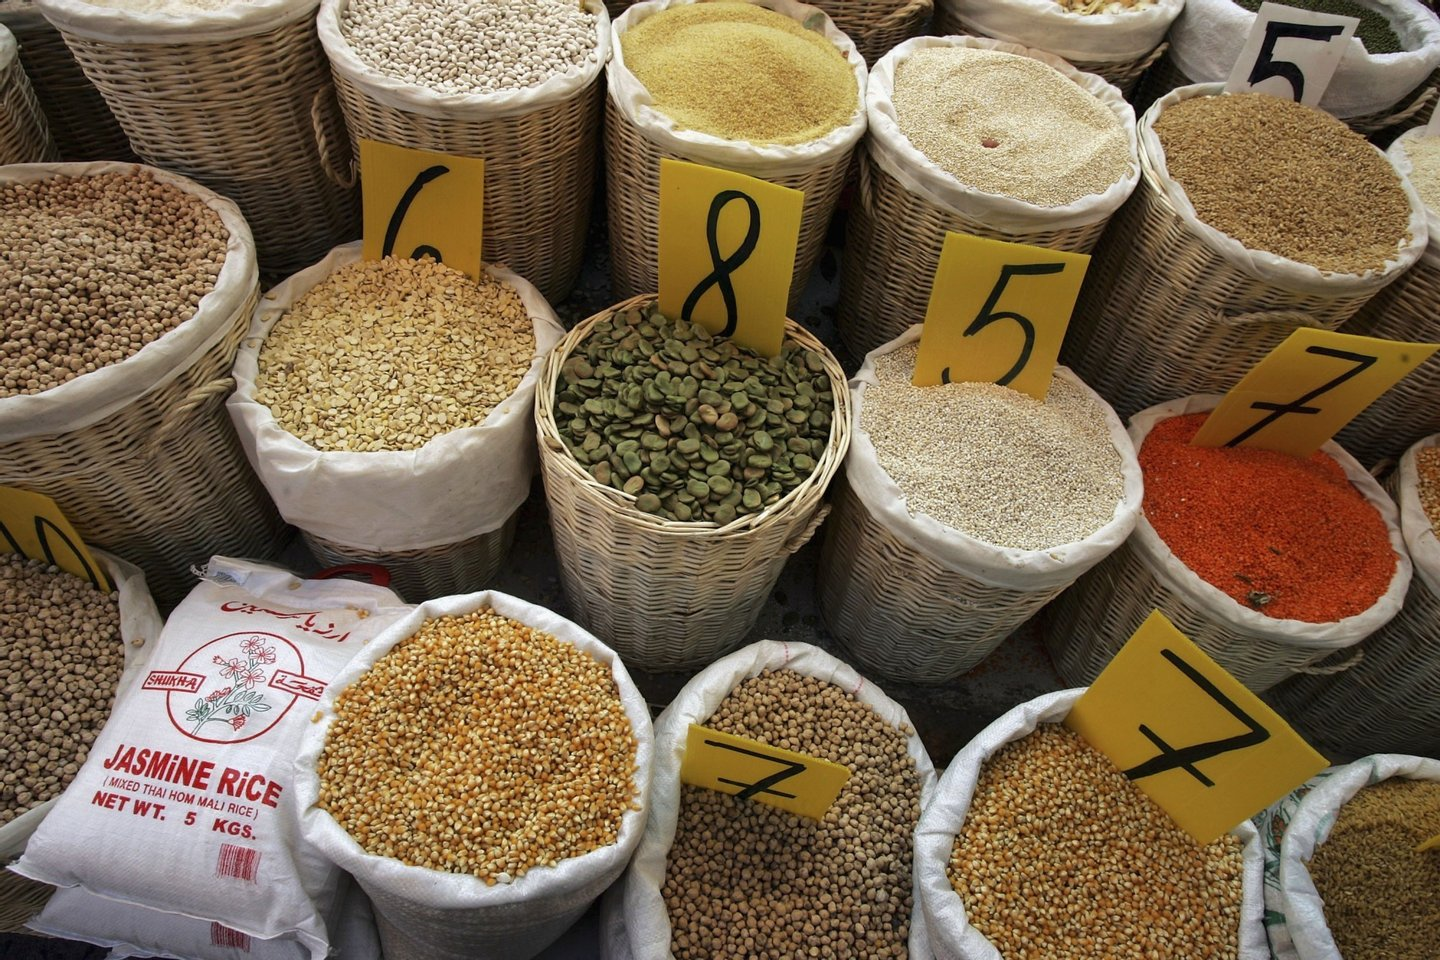 NETANYA, ISRAEL - FEBRUARY 22: Rice, lentils, chick peas, beans and other legumes, which traditionally feature on the daily menu in Mediterranean countries, are sold by weight in the local produce market February 22, 2006 in Netanya in central Israel. The Mediterranean diet, a term used to broadly describe the eating habits of the people of the region, is widely believed to be responsible for the low rates of chronic heart disease in the populations of the 16 countries bordering the Mediterranean Sea. (Photo by David Silverman/Getty Images)